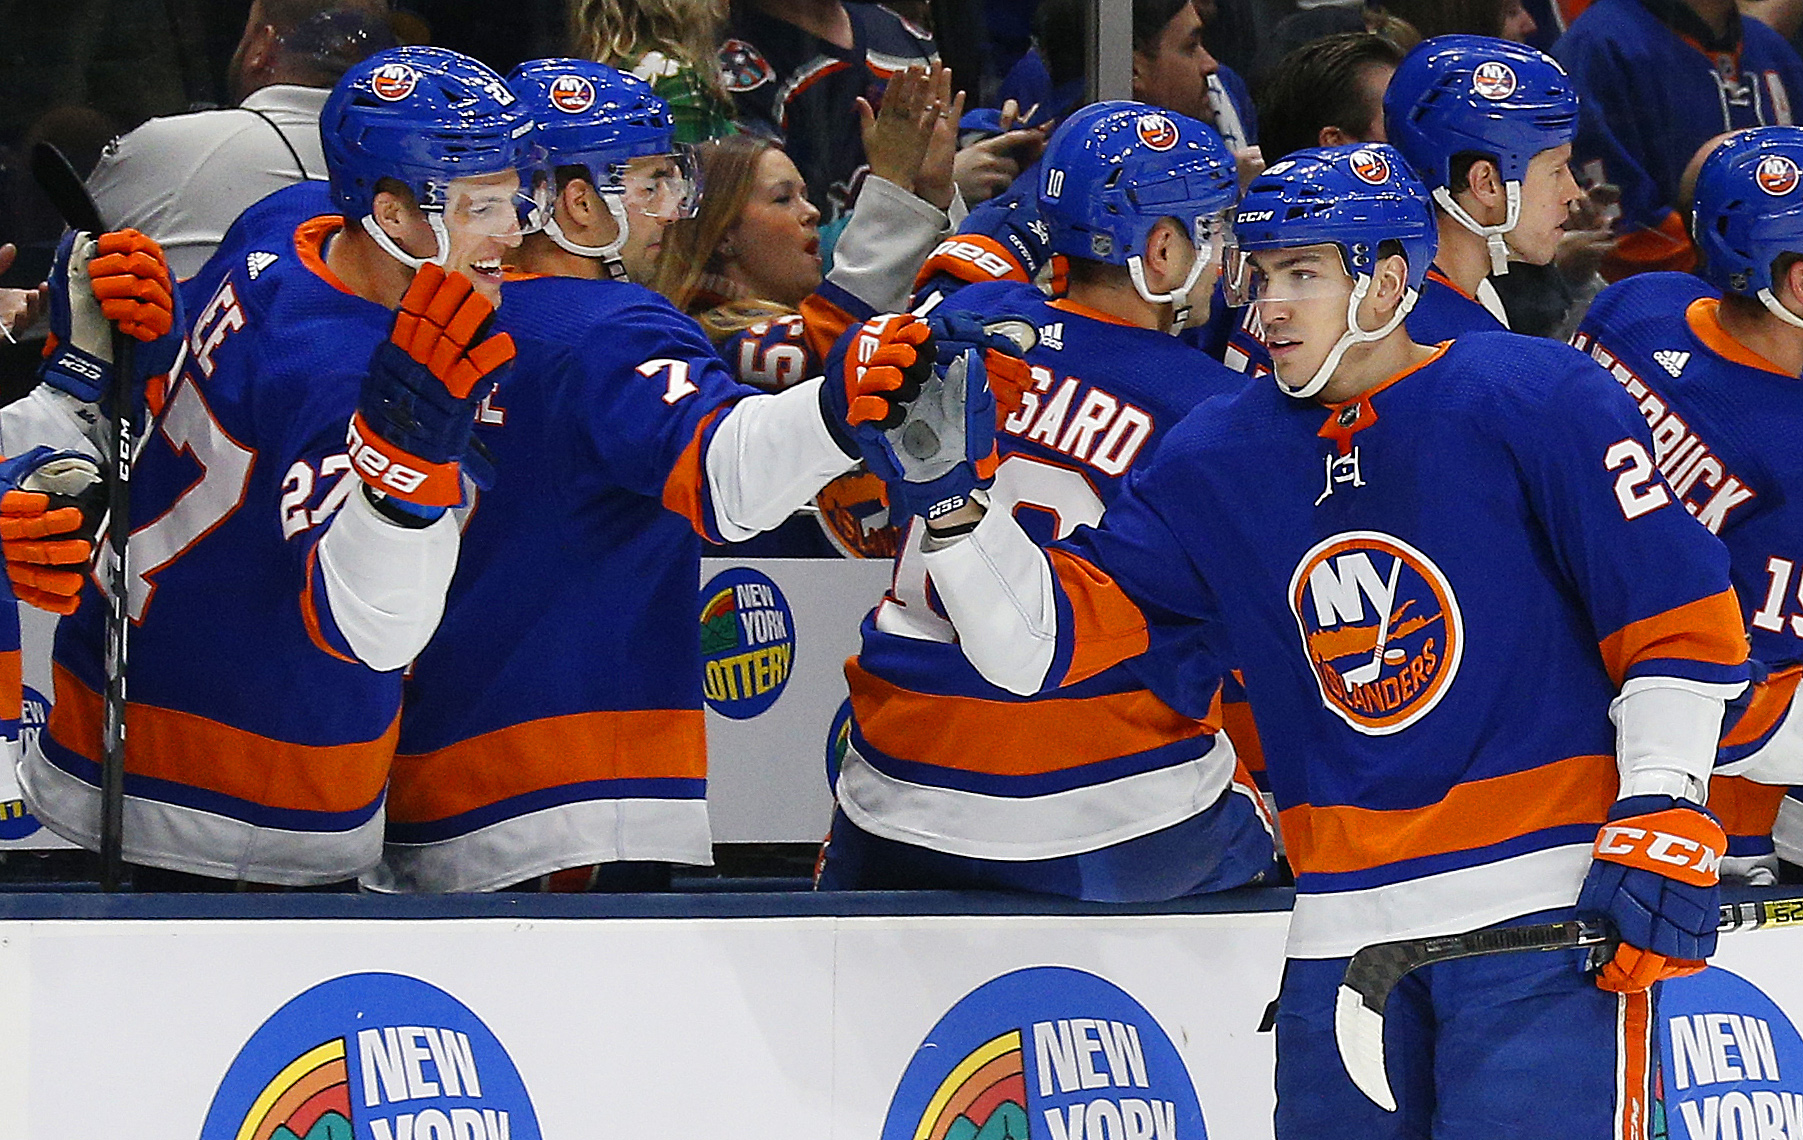 Dec 14, 2019; Uniondale, NY, USA; New York Islanders left wing Michael Dal Colle (28) celebrates with teammates after scoring a goal against the Buffalo Sabres during the first period at Nassau Veterans Memorial Coliseum. Mandatory Credit: Andy Marlin-USA TODAY Sports